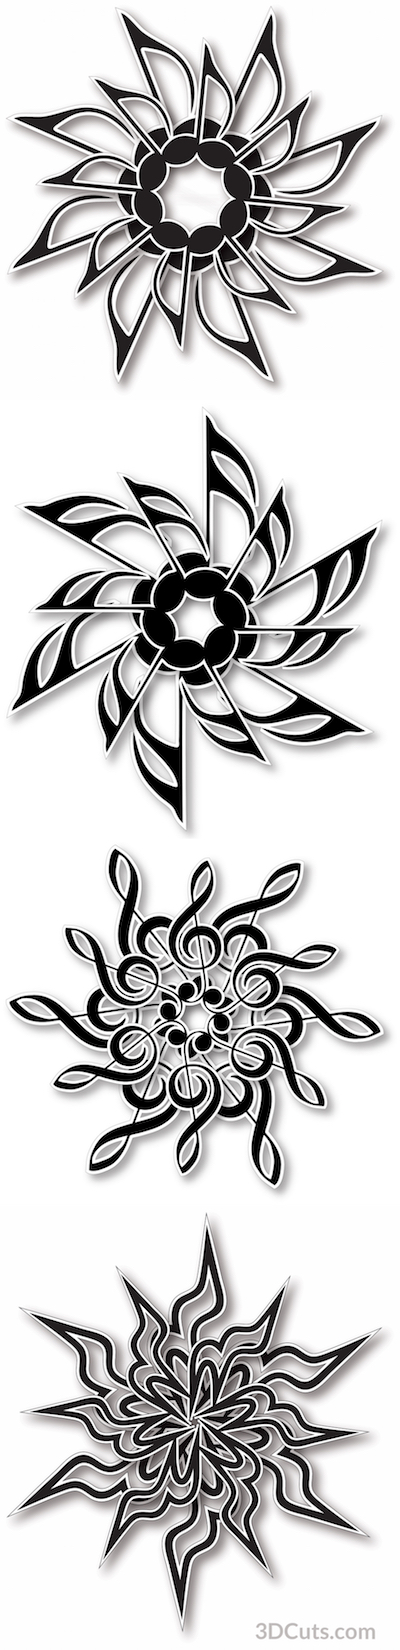 Musical Mandalas designs by Marji Roy of 3dcuts.com. Cutting files in svg, pdf, png, and dxf formats for Silhouette and Cricut cutting machines